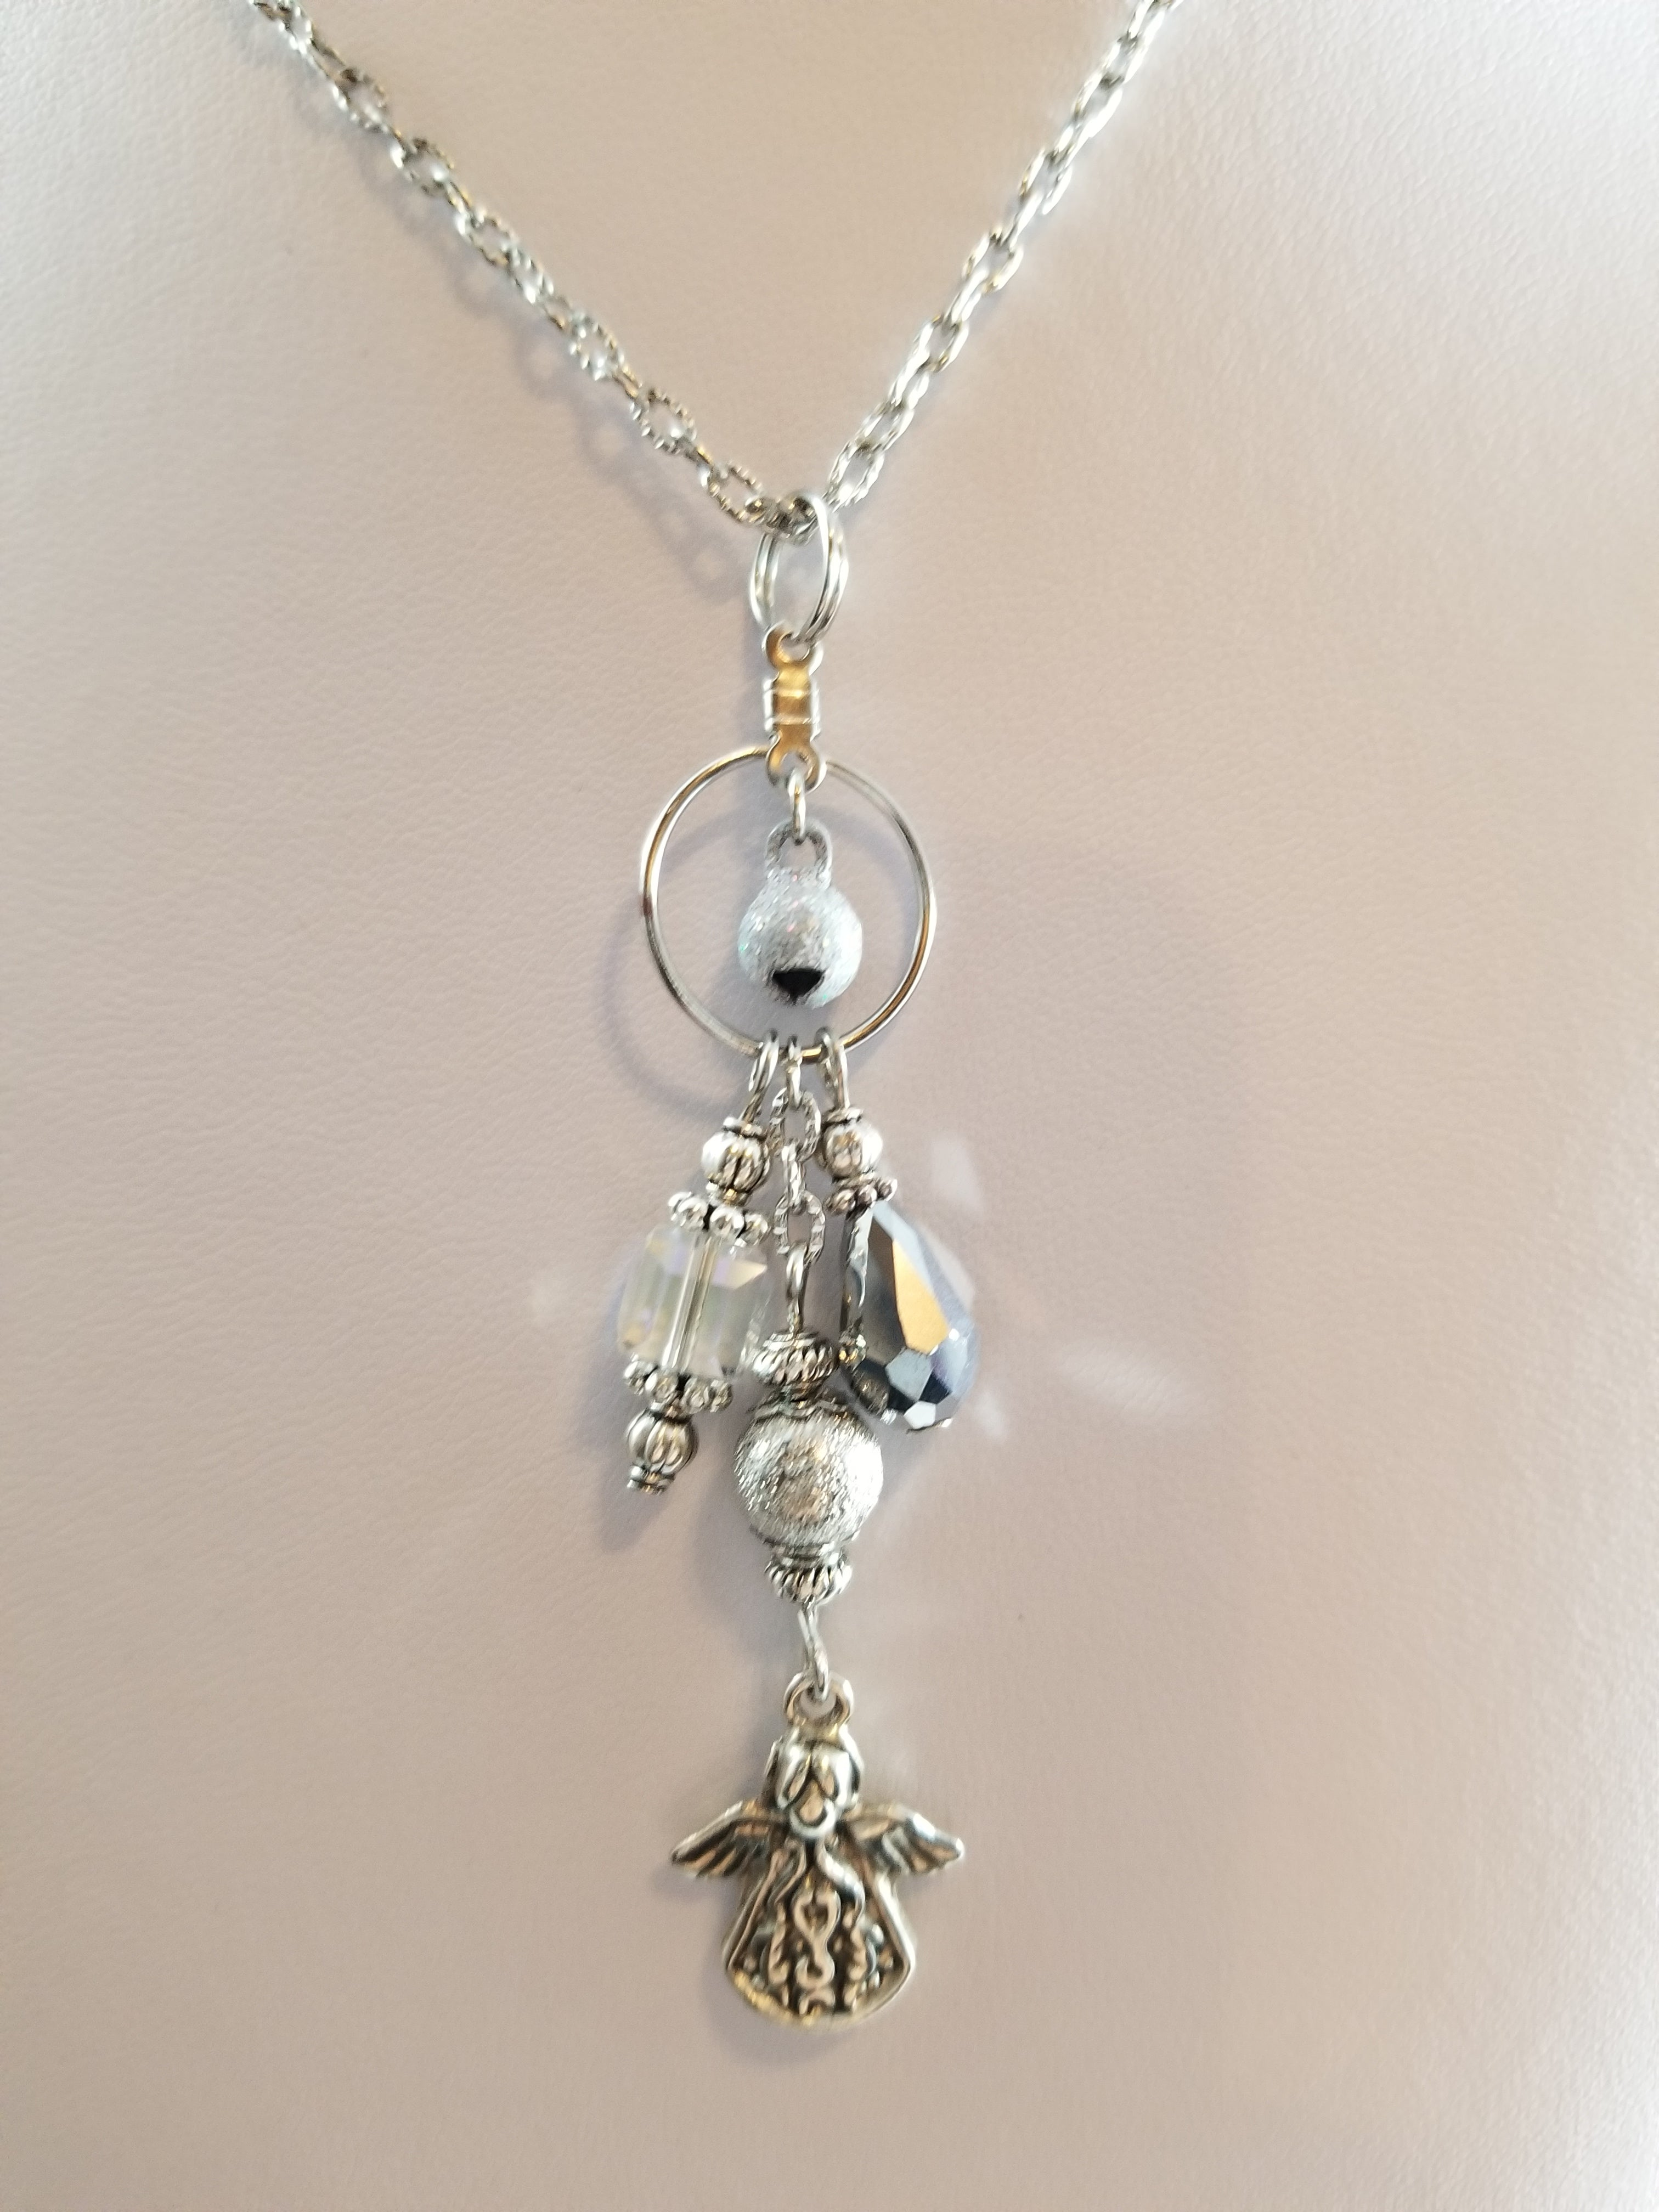 Silver Angel Simply Chaming Christmas Necklace